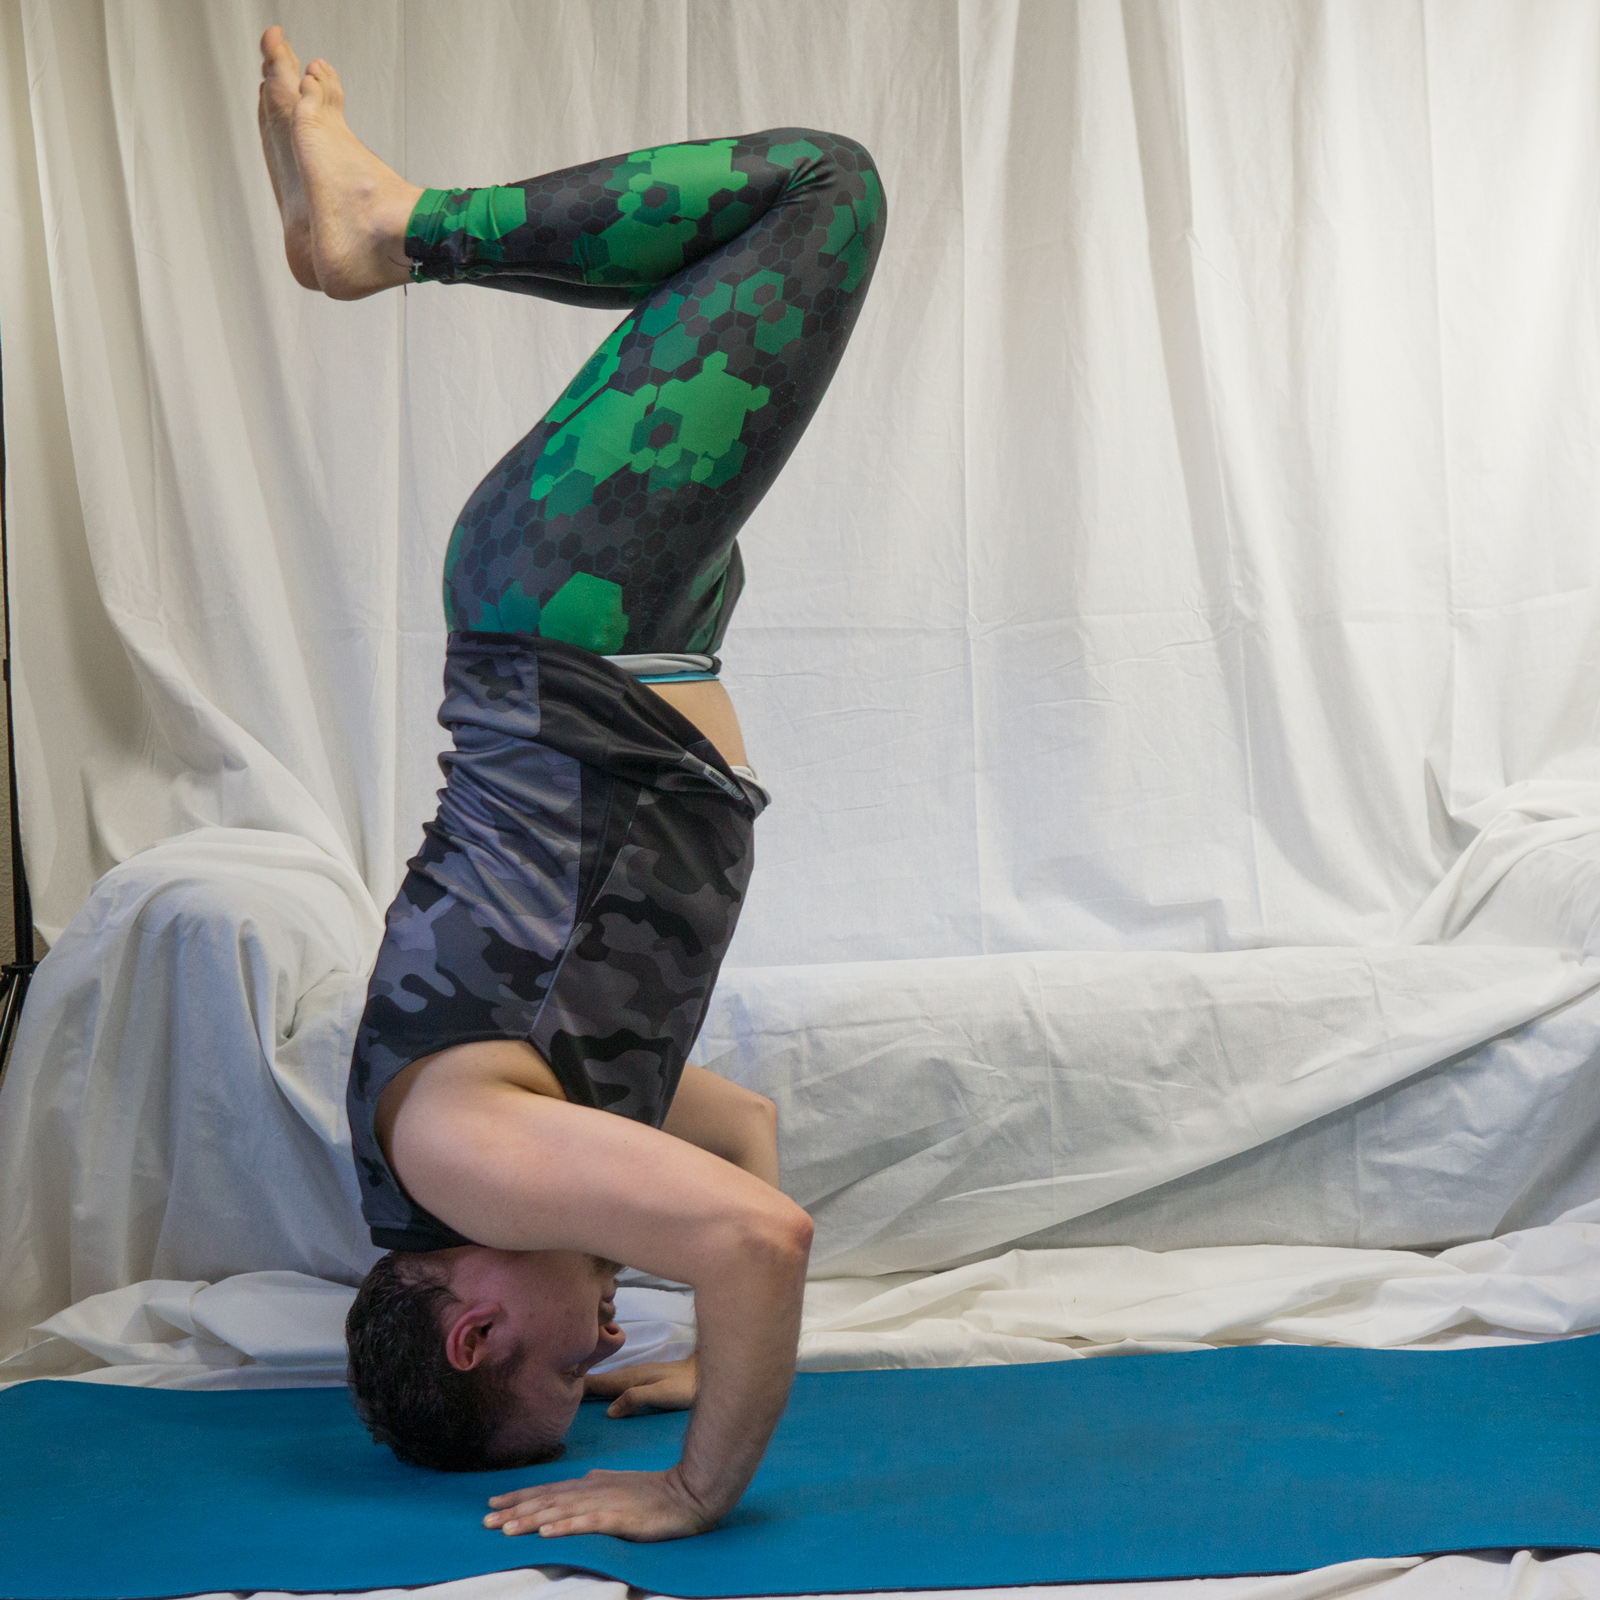 Tripod headstand in April 3rd 2018. The challenge in this one was the coordination, knowing where the legs are.